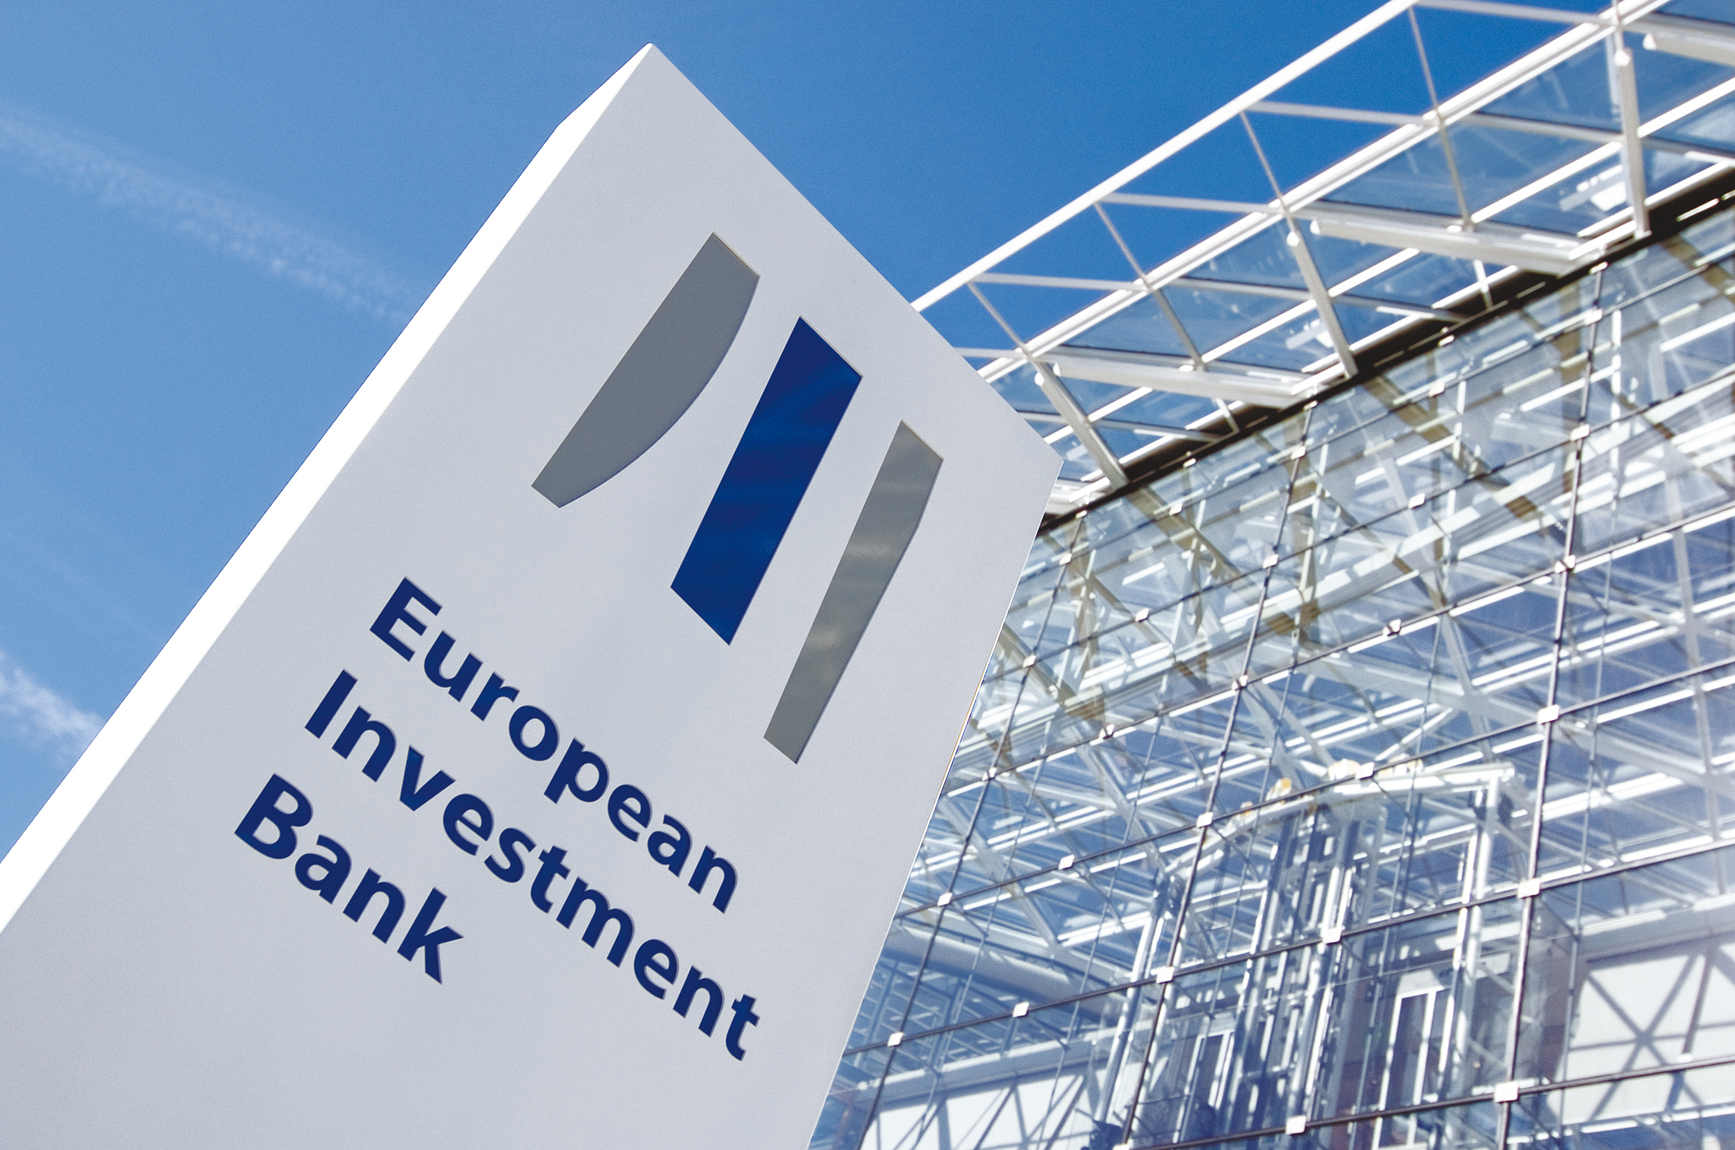 Cogeneration industry to the EIB: capital necessary on favourable terms